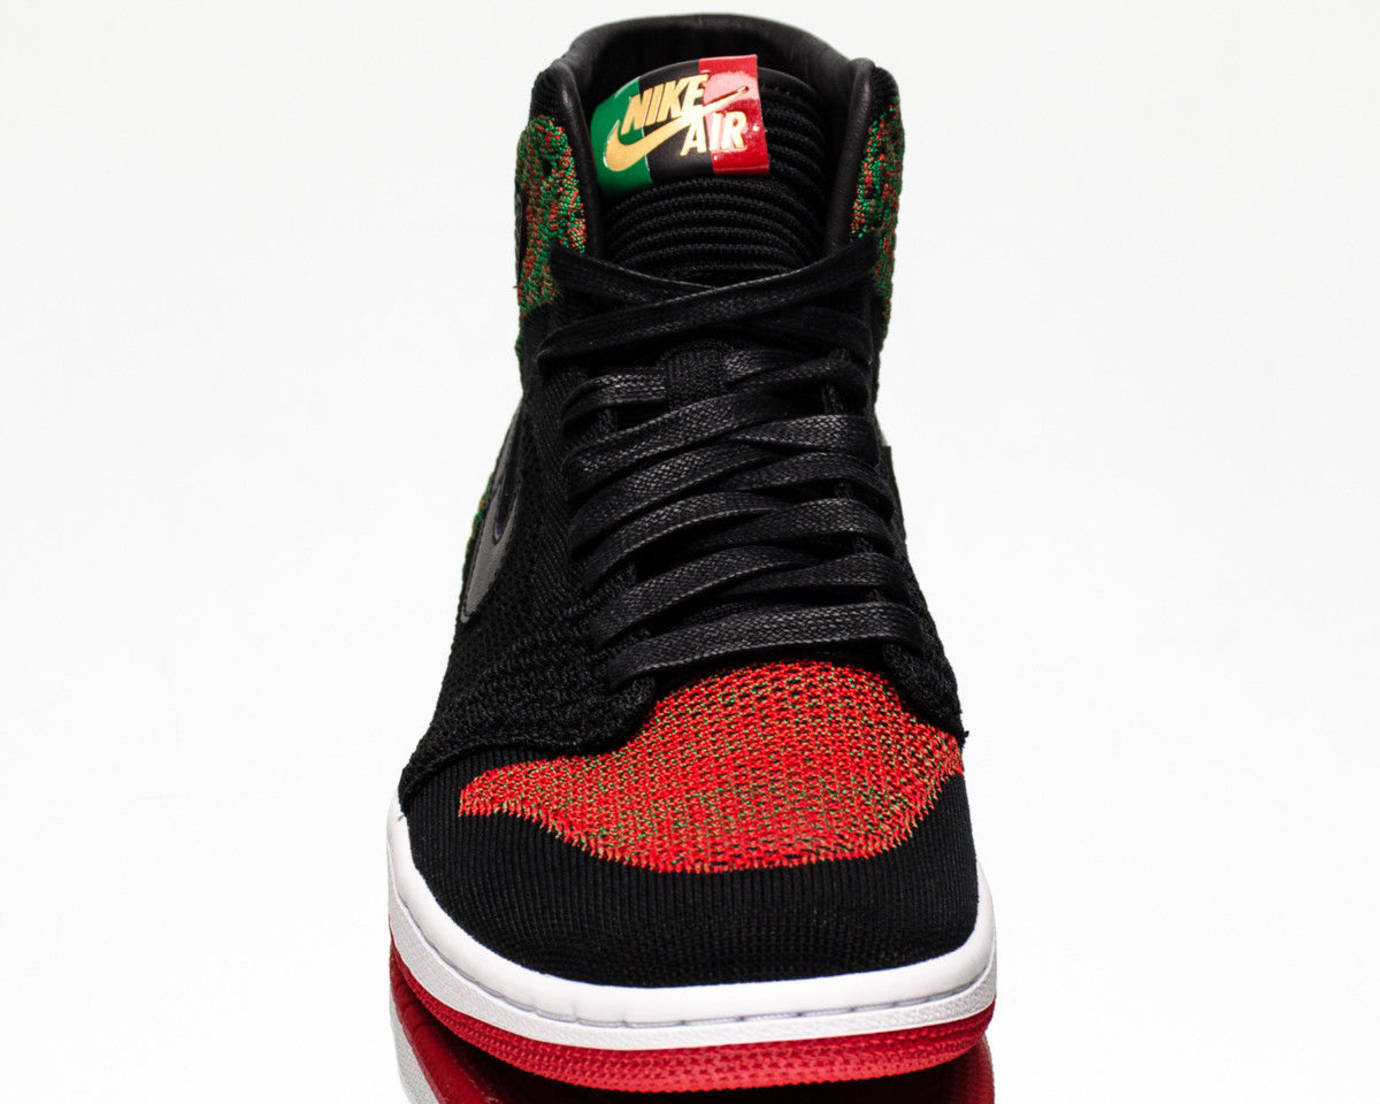 48f589457d627 Air Jordan 1 Retro High Black History Month BHM 2018 Release Date ...